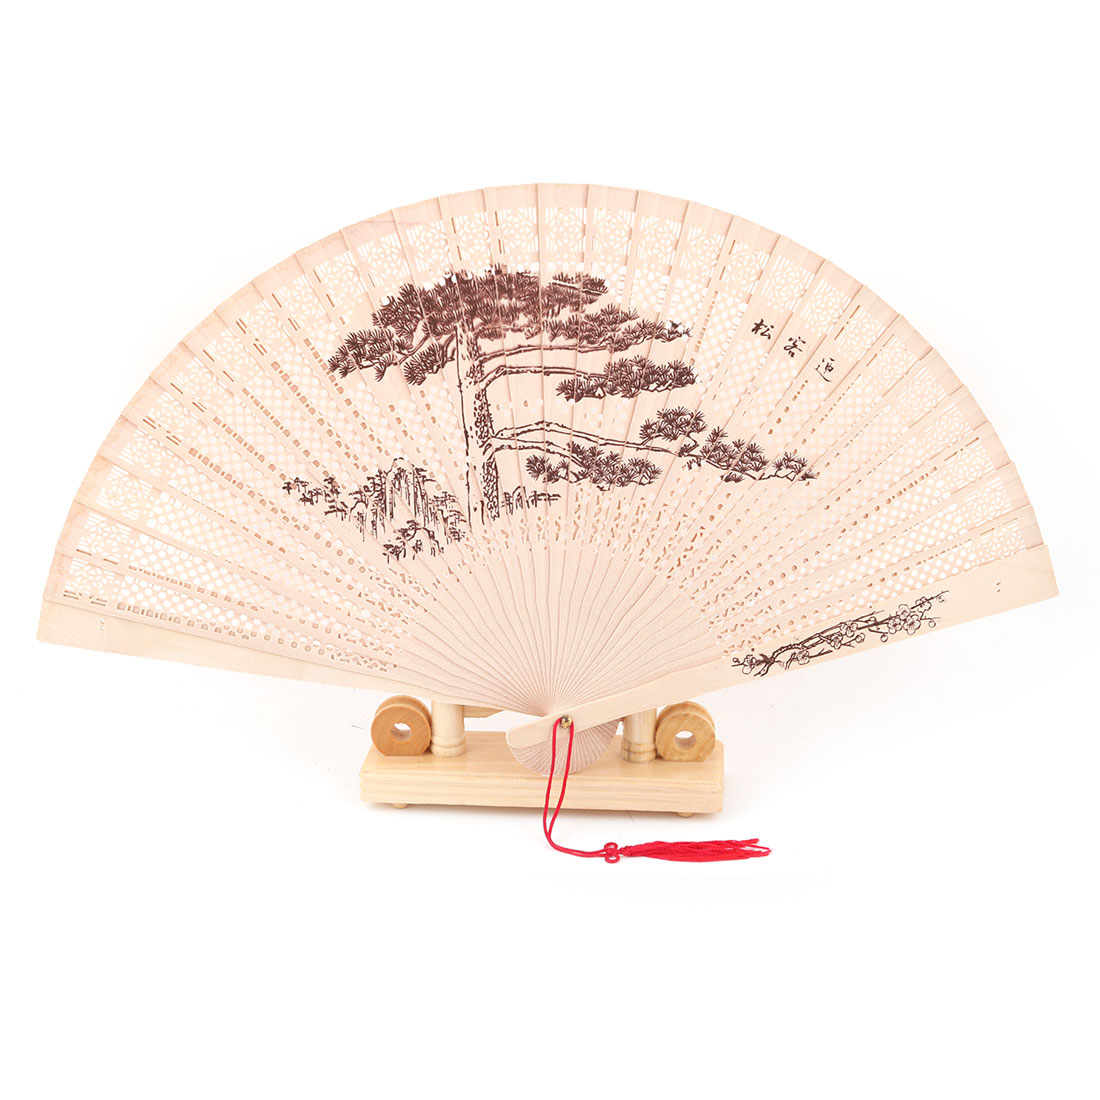 Bamboo Tree Pattern Tassel Decor Folding Hand Fan Display Holder Beige 2 in 1